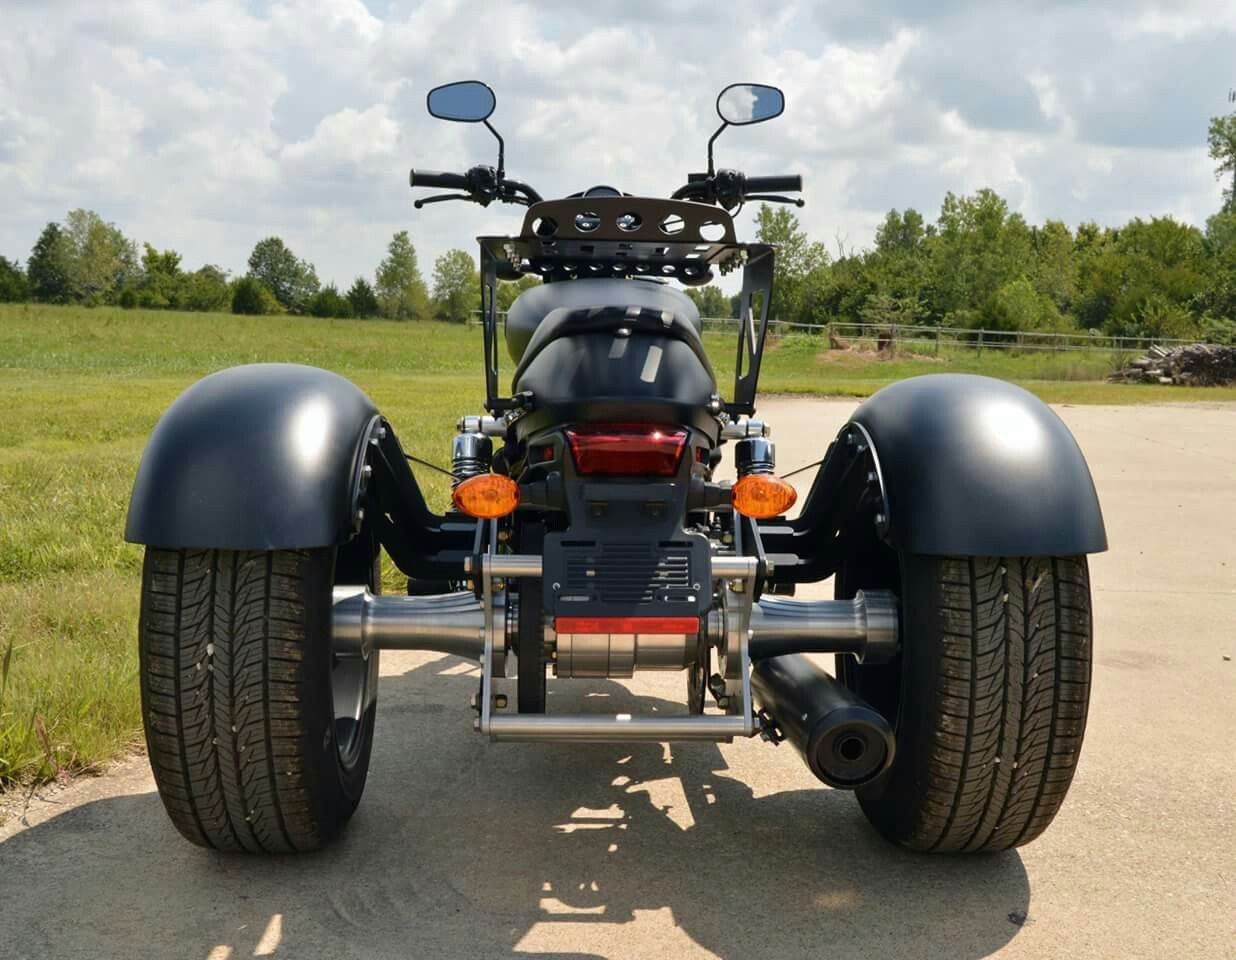 Check out our latest Trike, a Harley-Davidson Street 750 ...